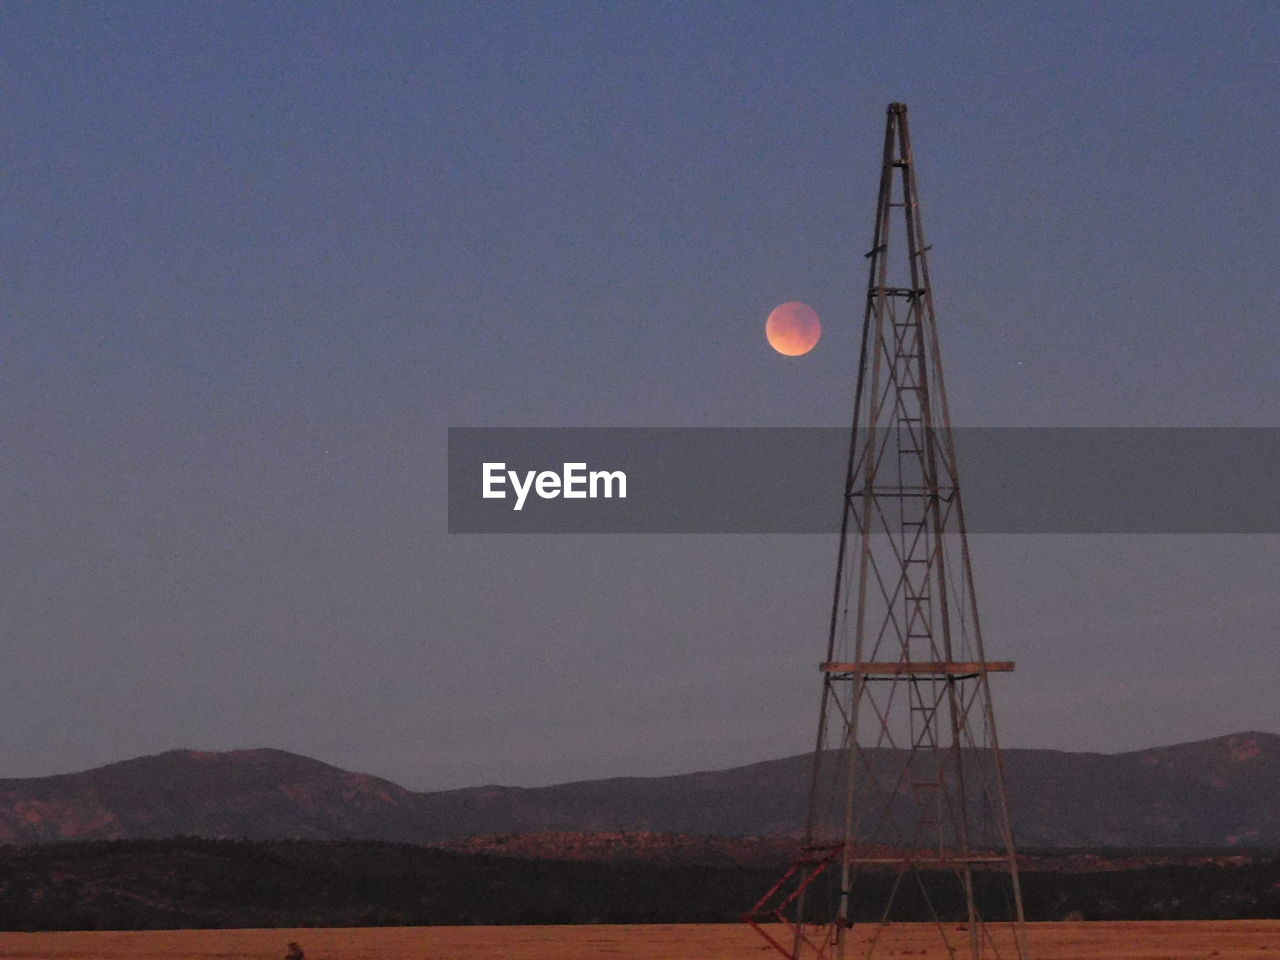 moon, astronomy, nature, beauty in nature, scenics, tranquility, outdoors, space exploration, clear sky, night, no people, sky, space, half moon, crescent, astronomy telescope